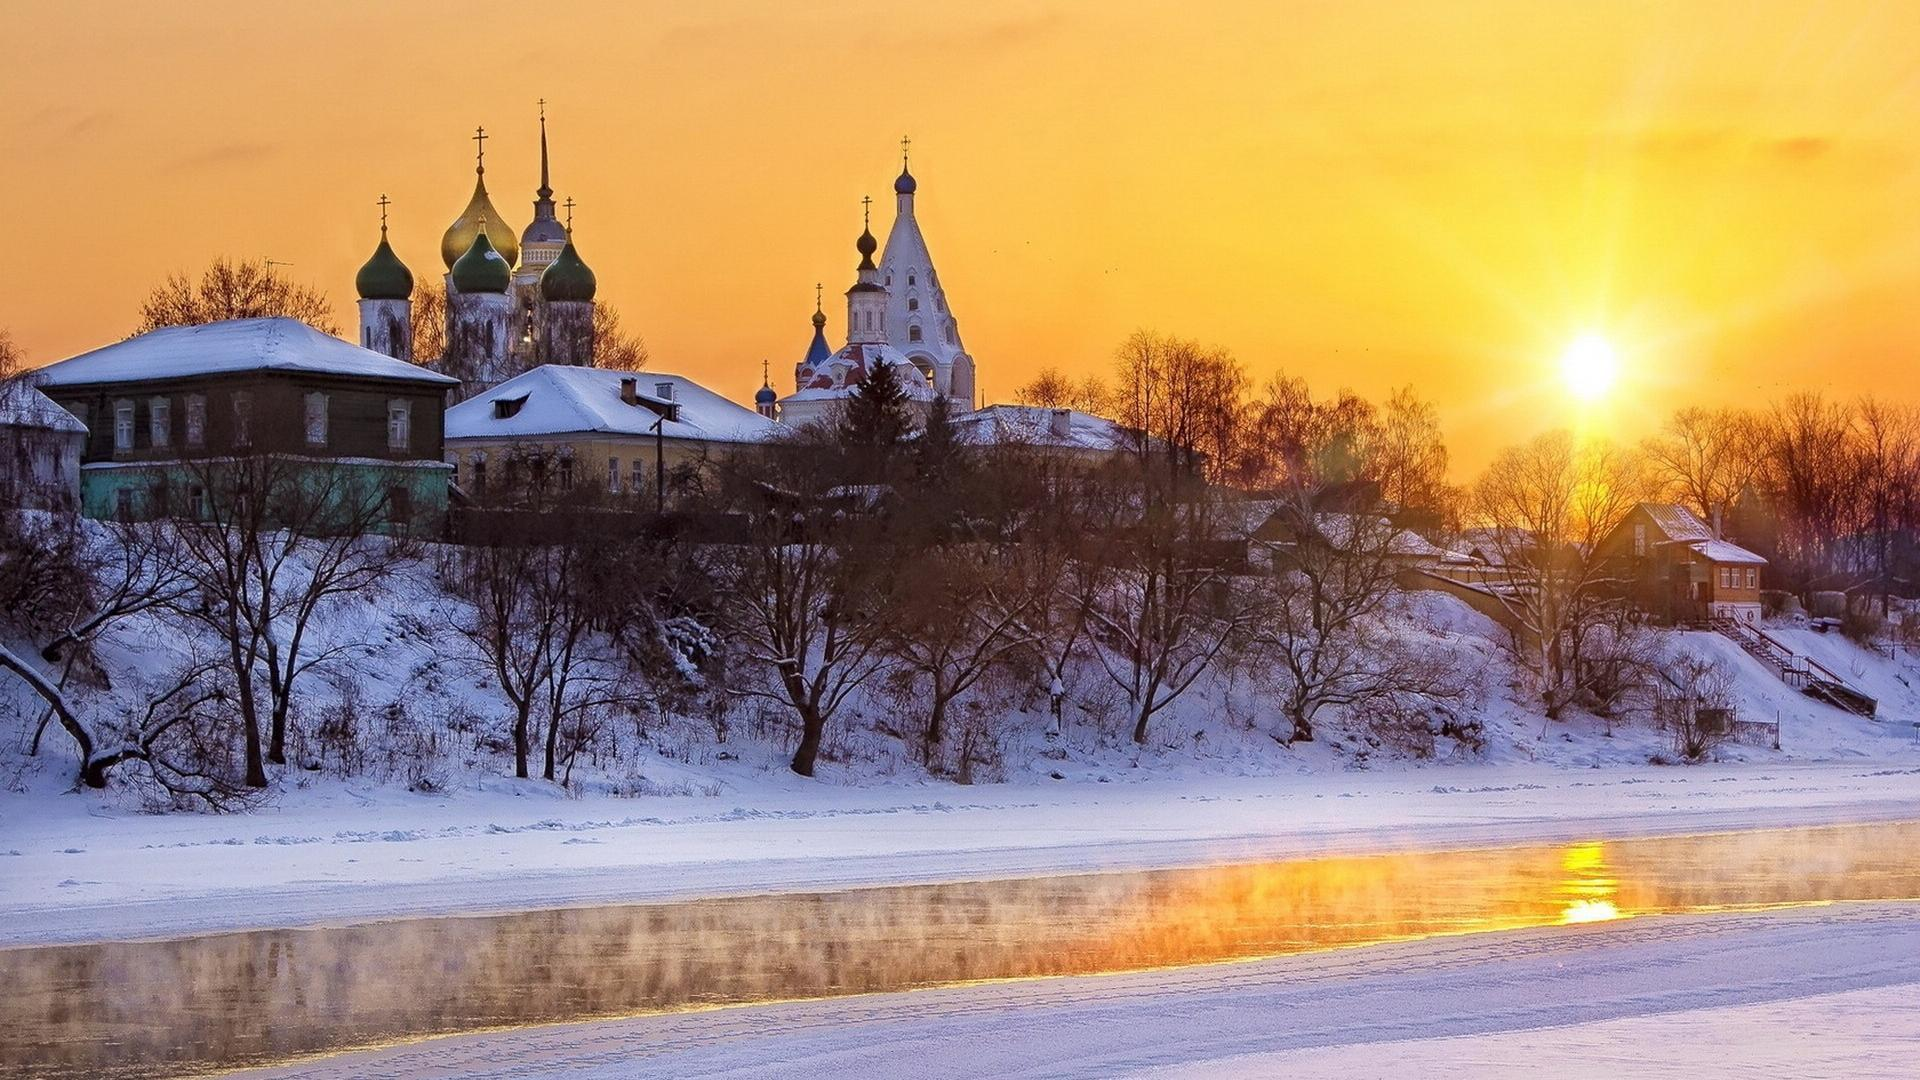 Russian Church in the Winter